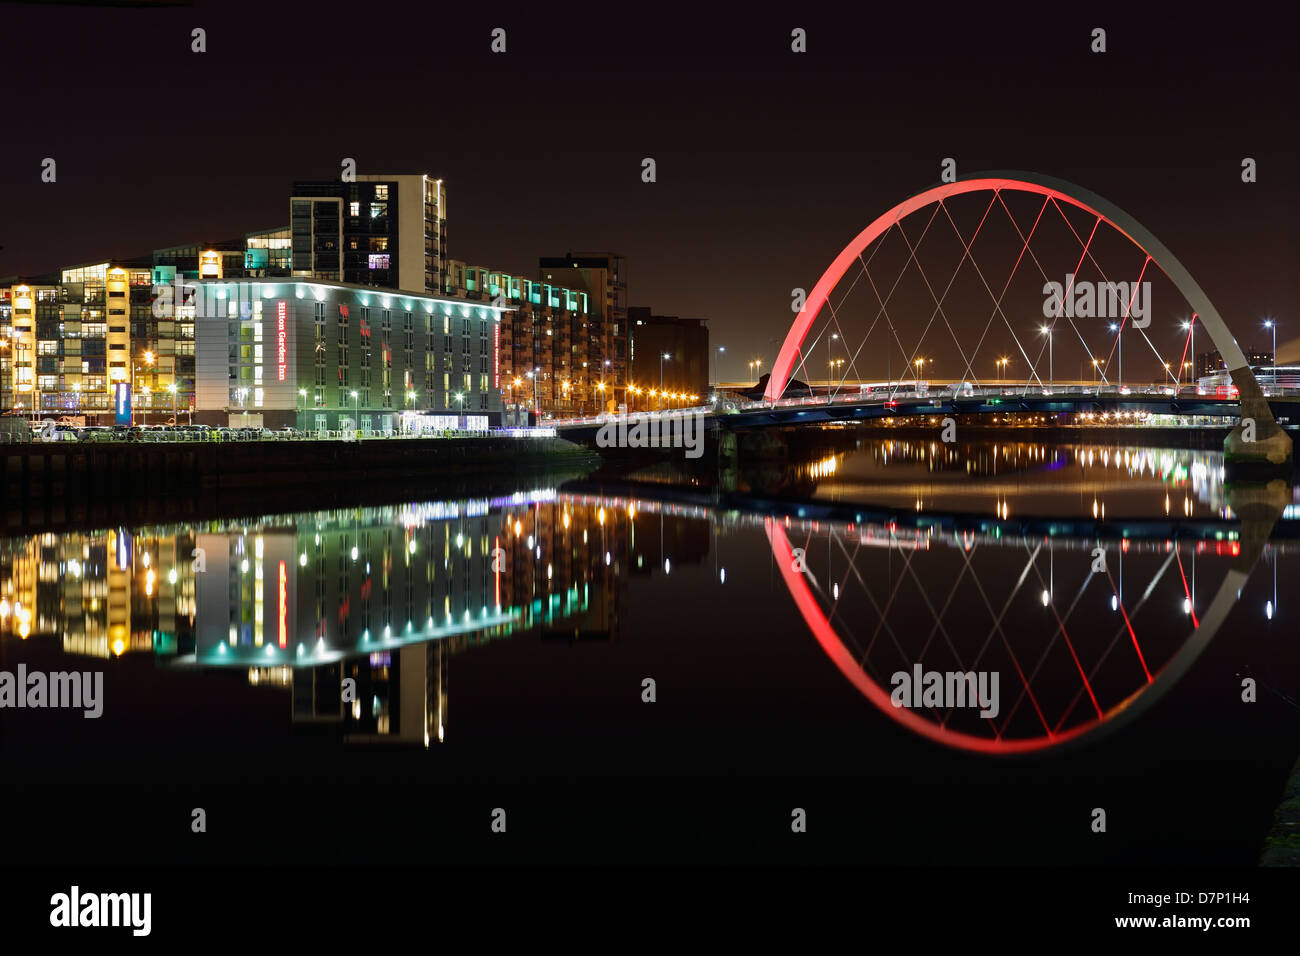 The Clyde Arc bridge reflected in the River Clyde, Glasgow, Scotland, UK - Stock Image